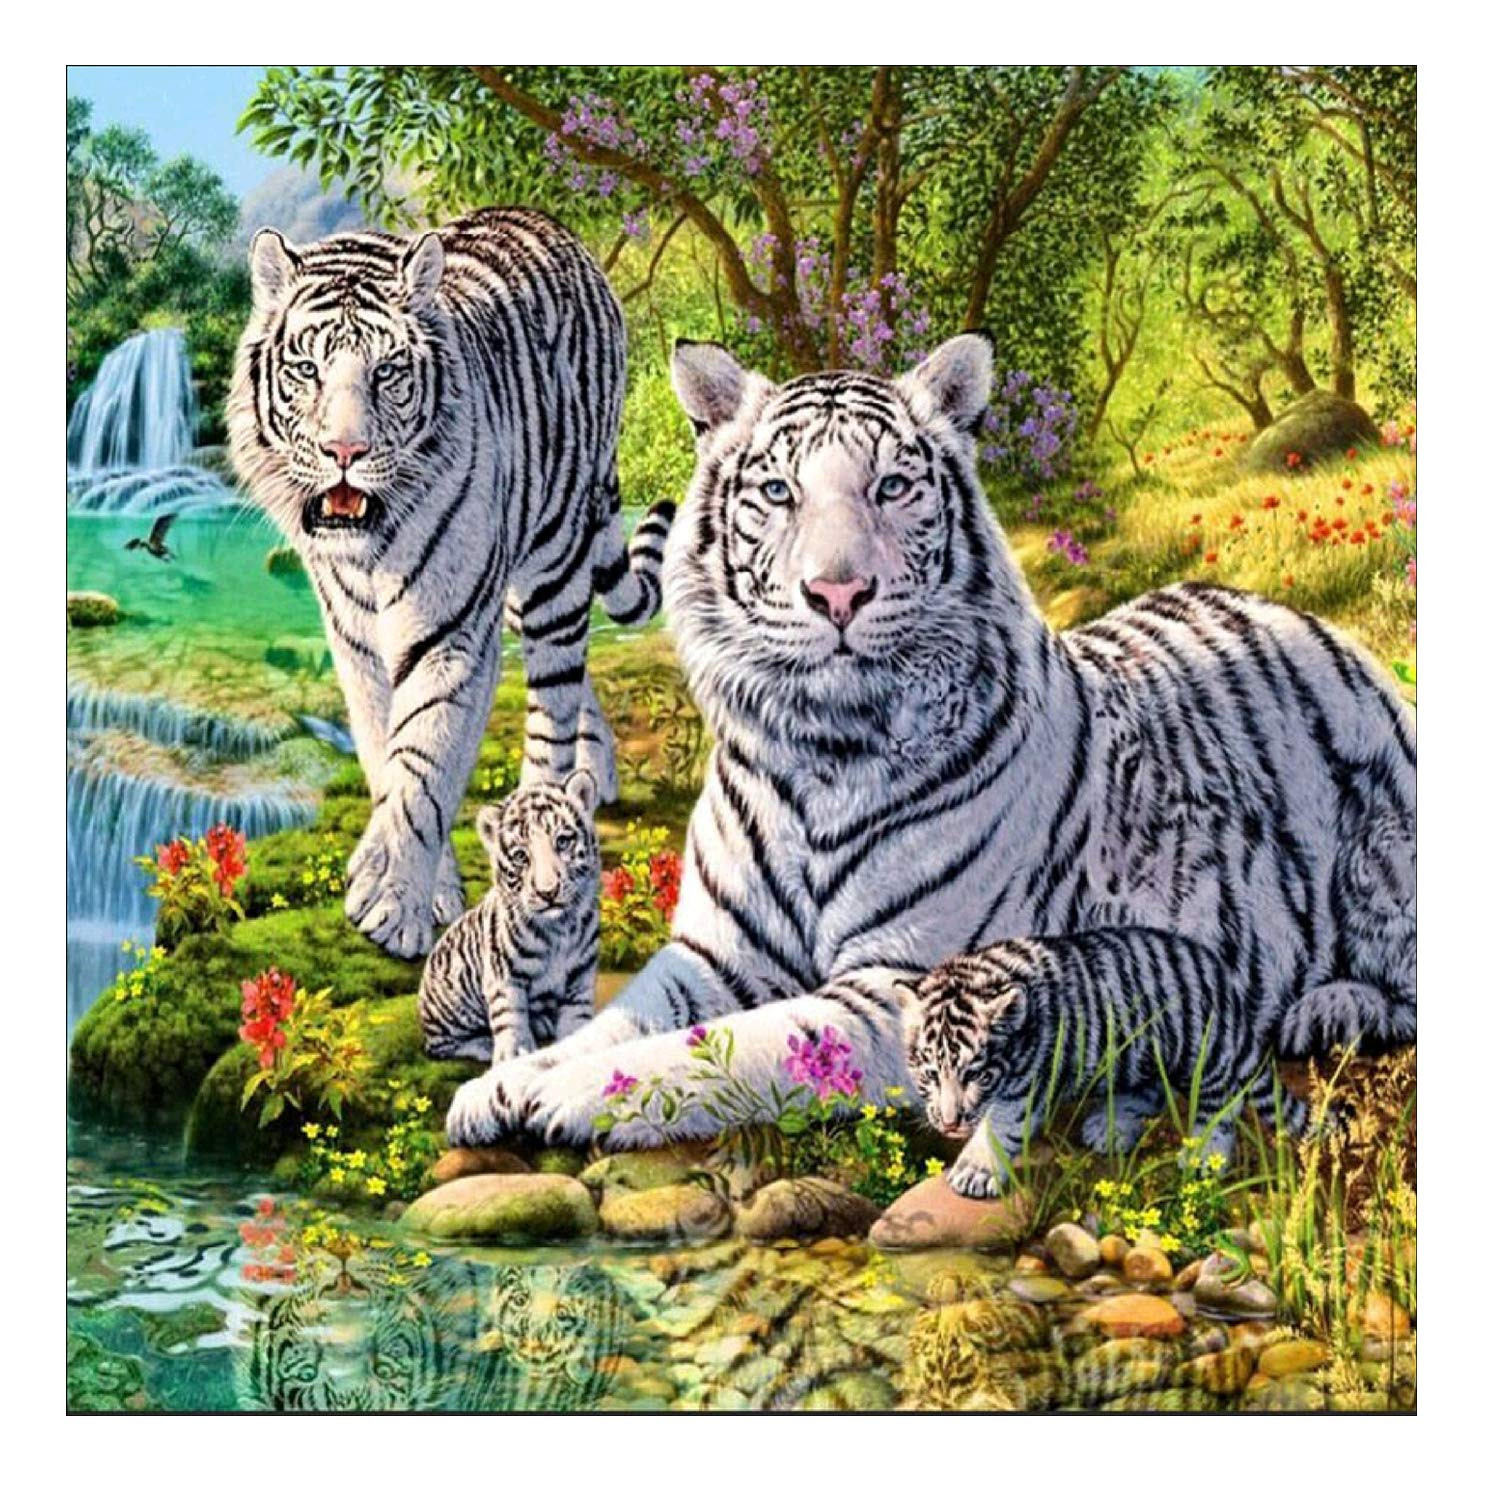 DIY 5D Diamond Painting by Number Kit, White Tiger Crystal Rhinestone Embroidery Cross Stitch Arts Craft Supply Canvas Wall Decor AIRDEA